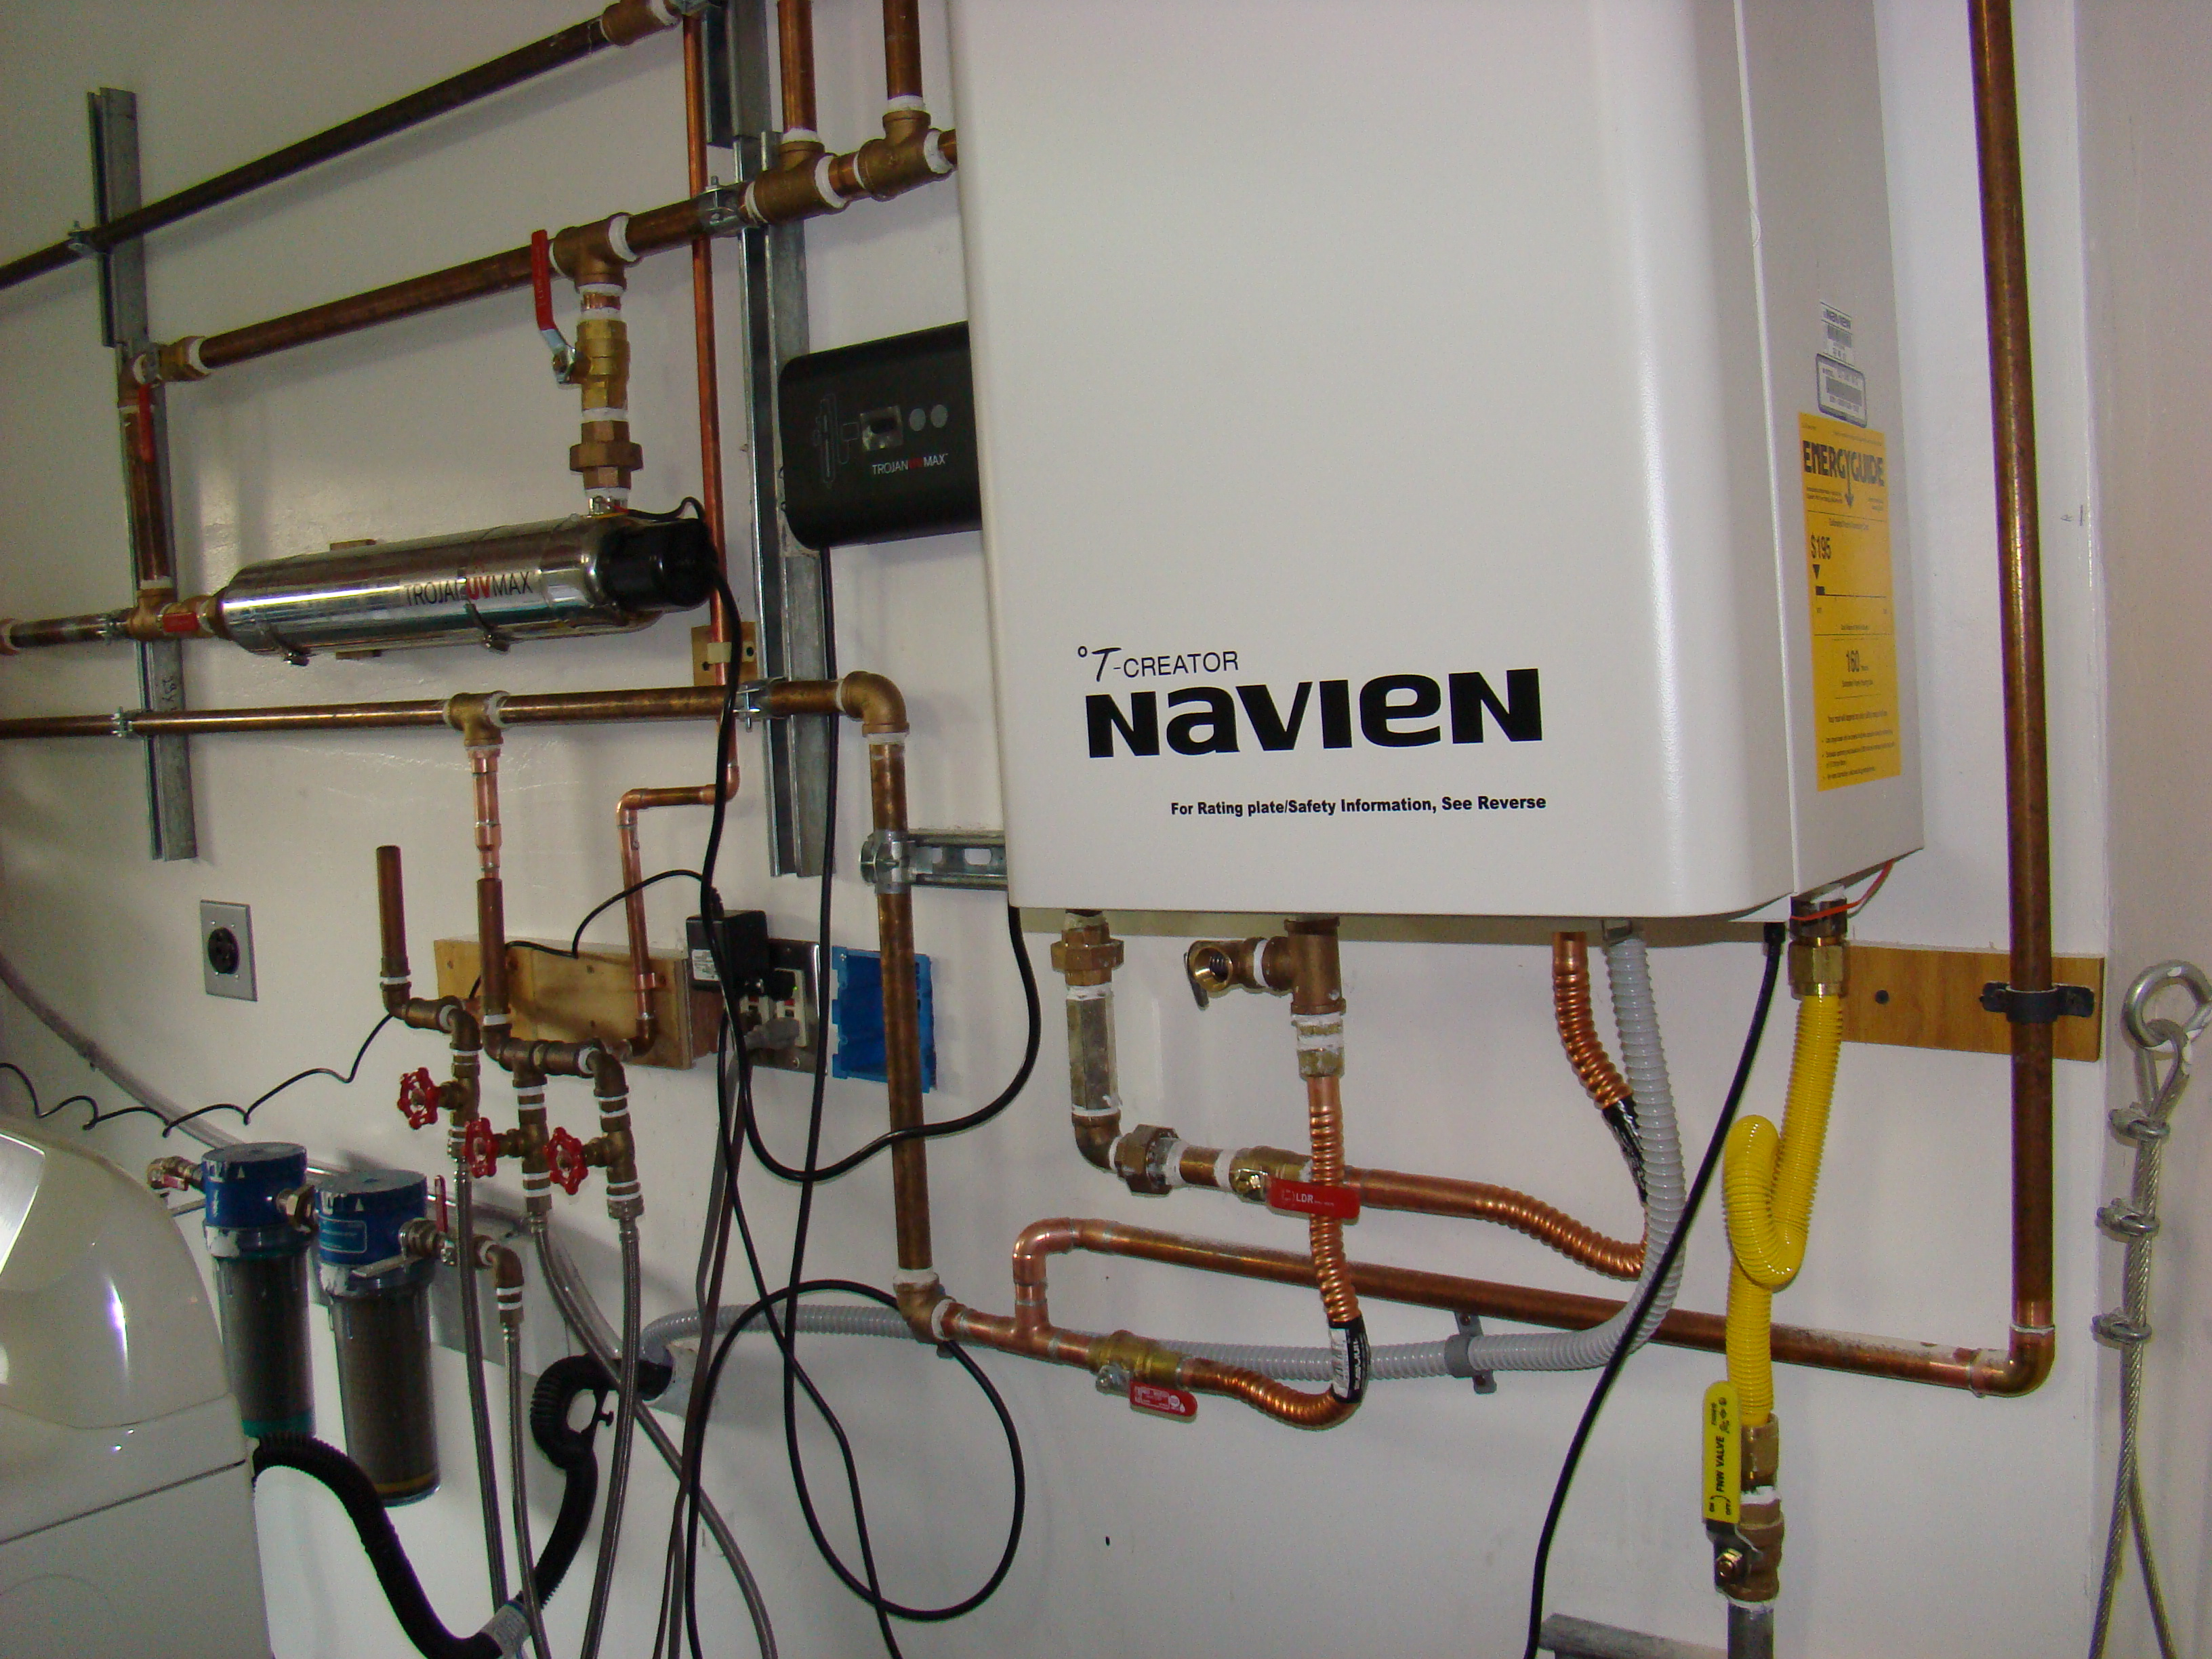 0021 plumber in san antonio and tankless water heater installer local navien wiring diagram at crackthecode.co